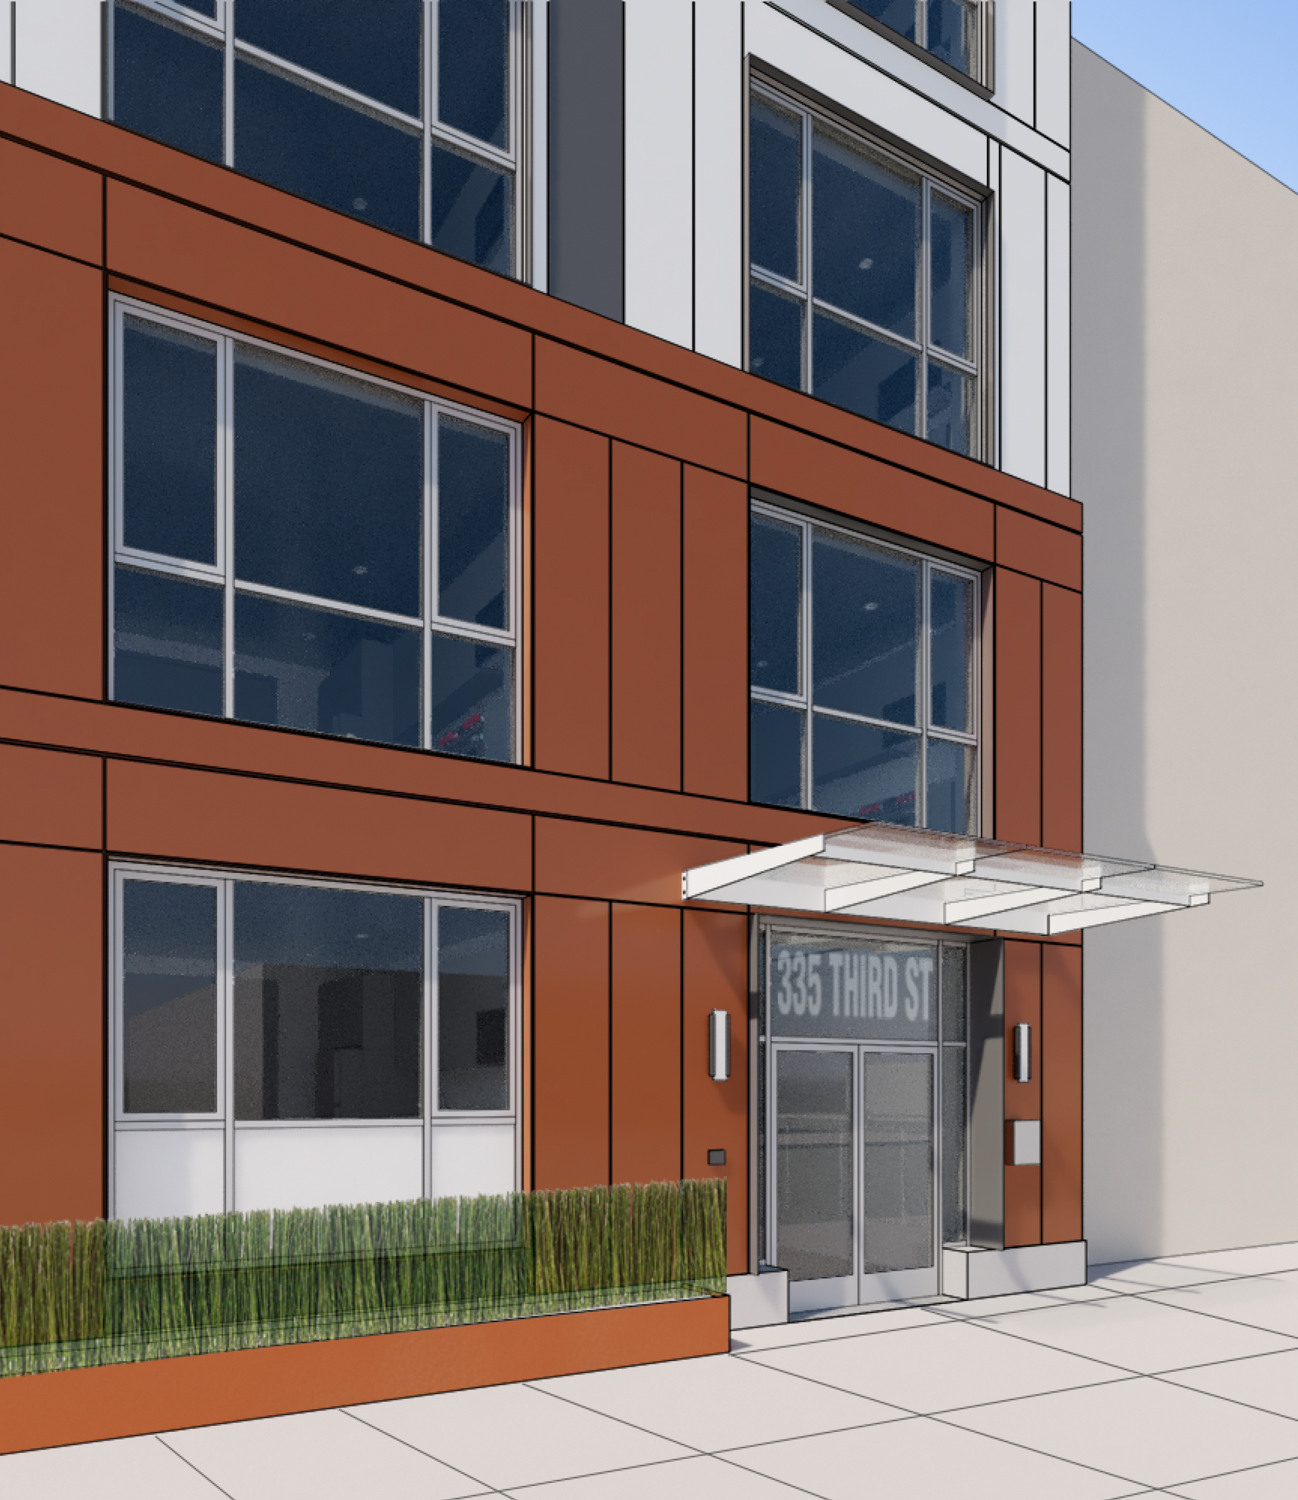 335 3rd Street building entry, rendering by R2 Building